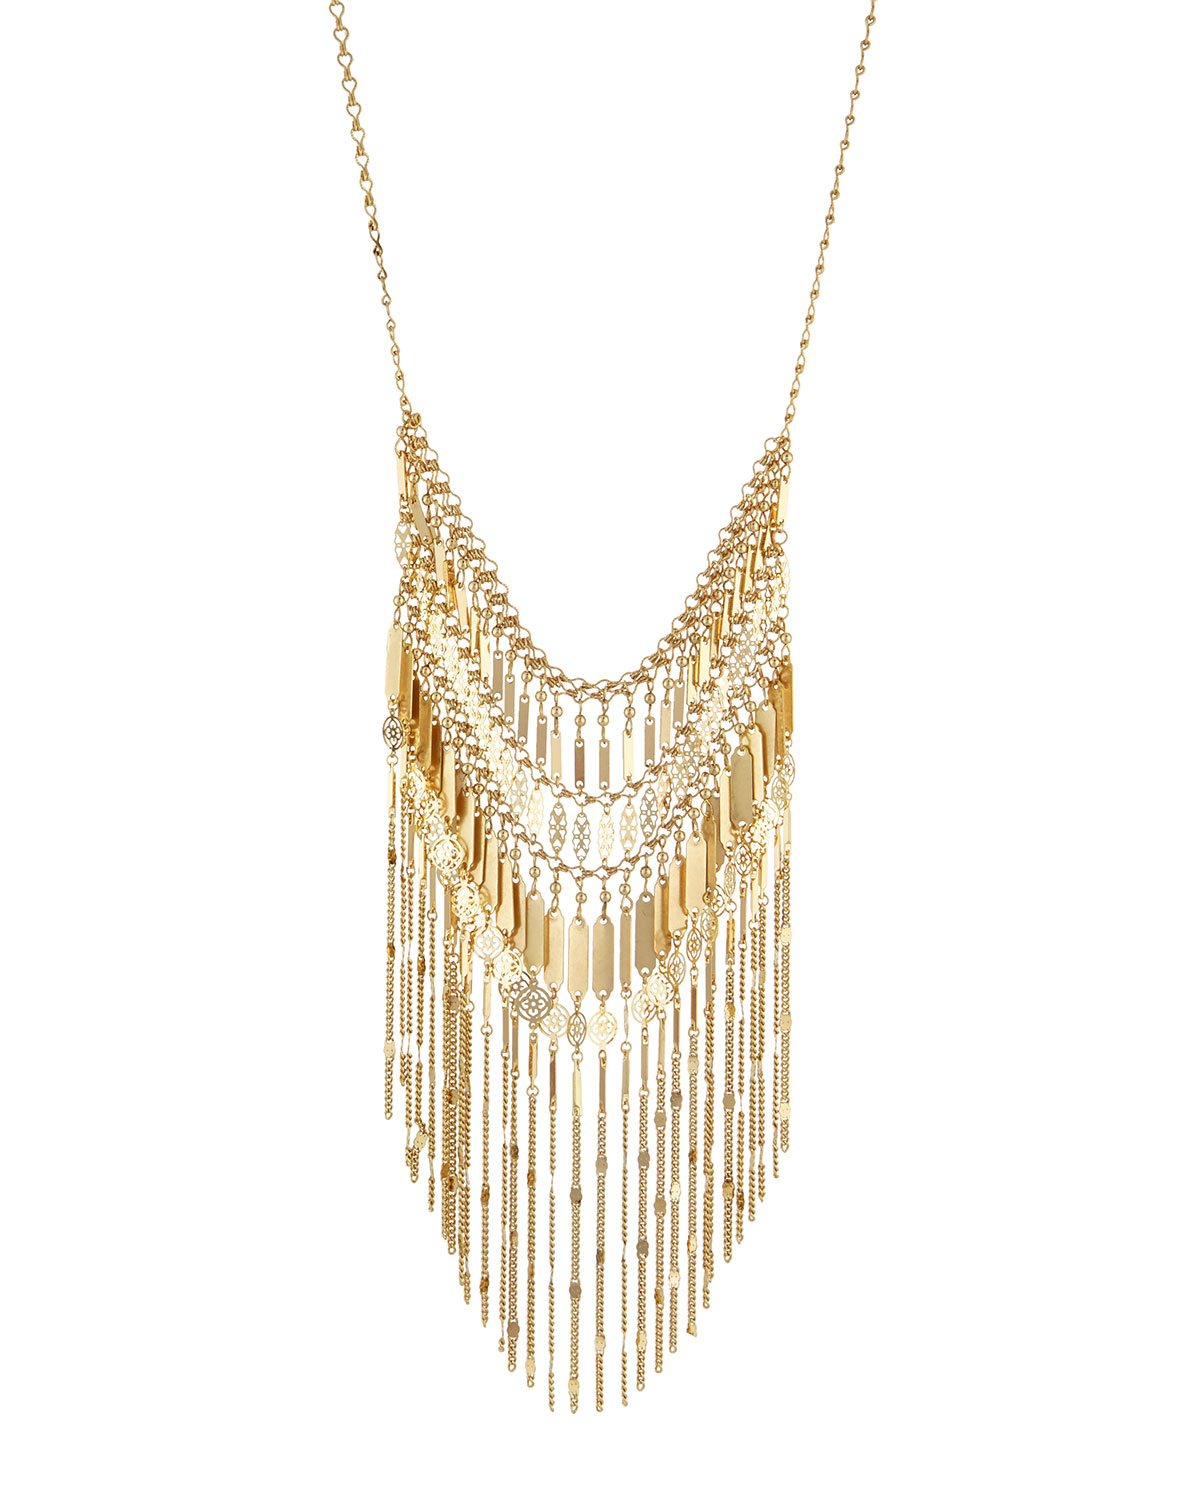 Lydell Nyc Golden Fringe Bib Necklace 2PdgSJWM